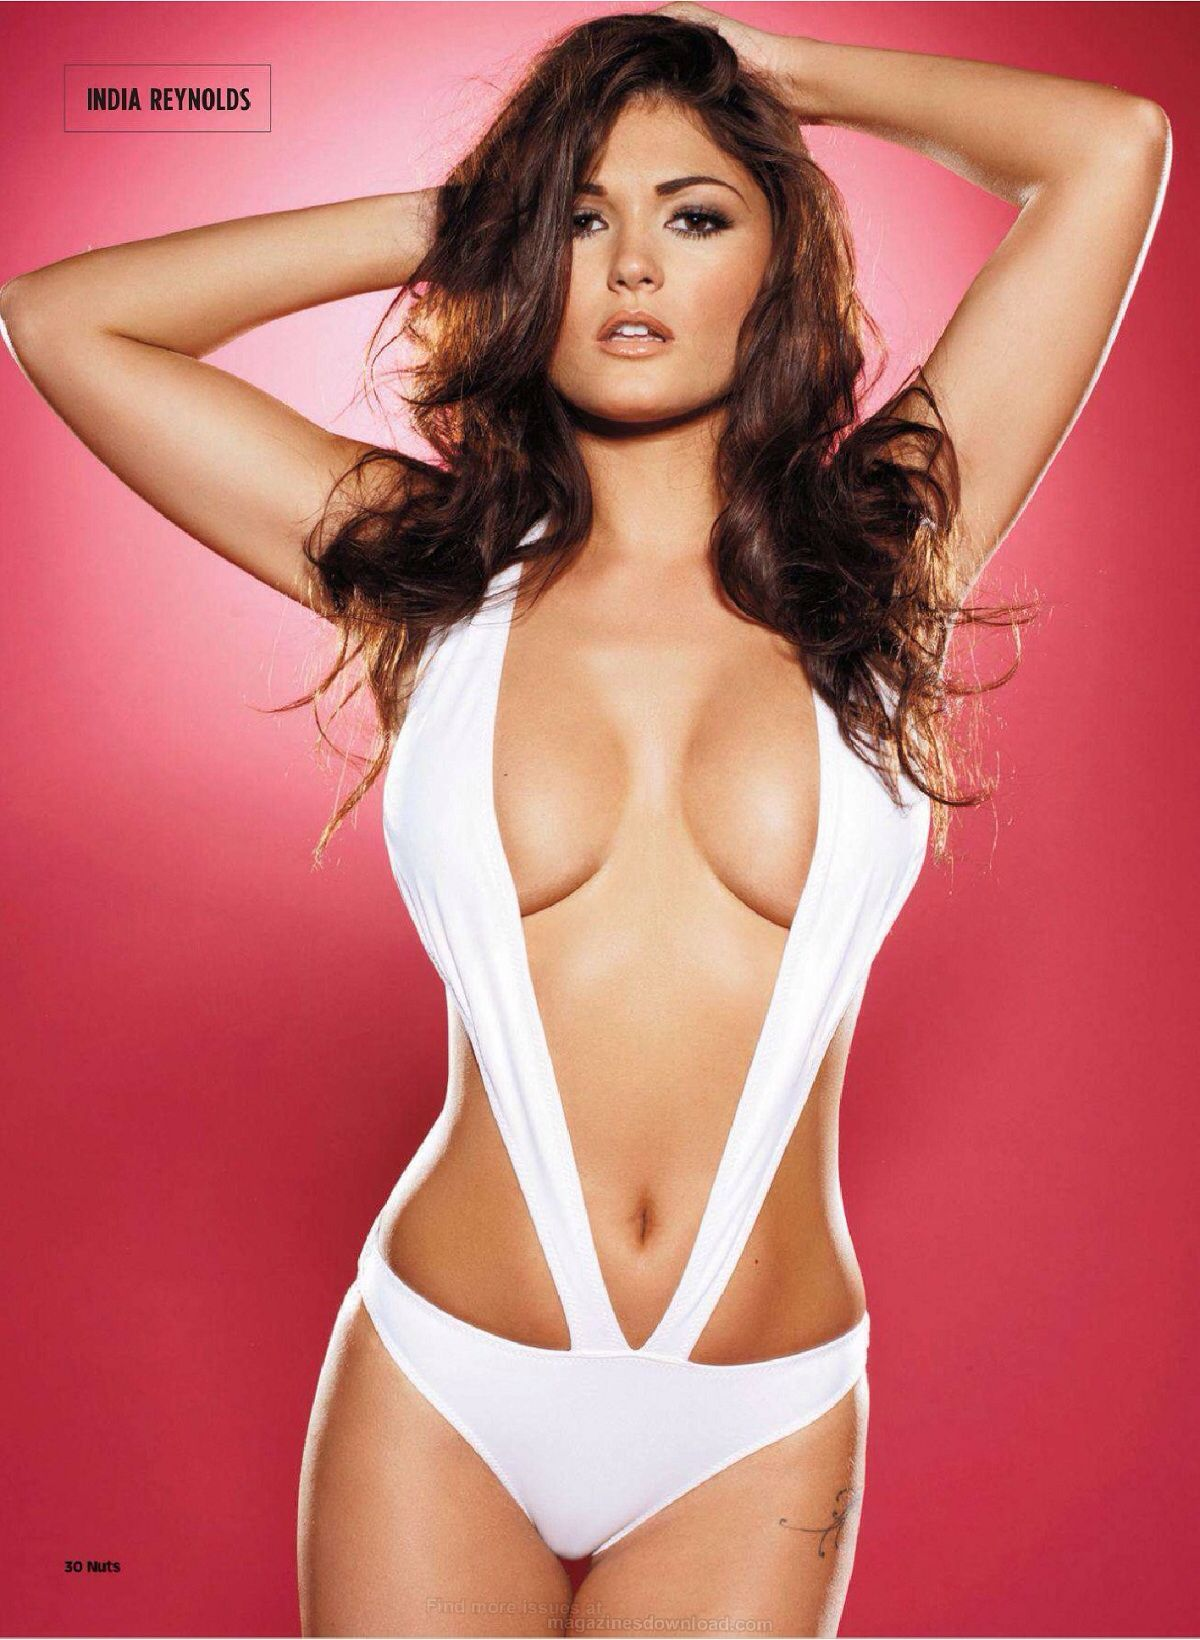 Well! India reynolds nuts models also